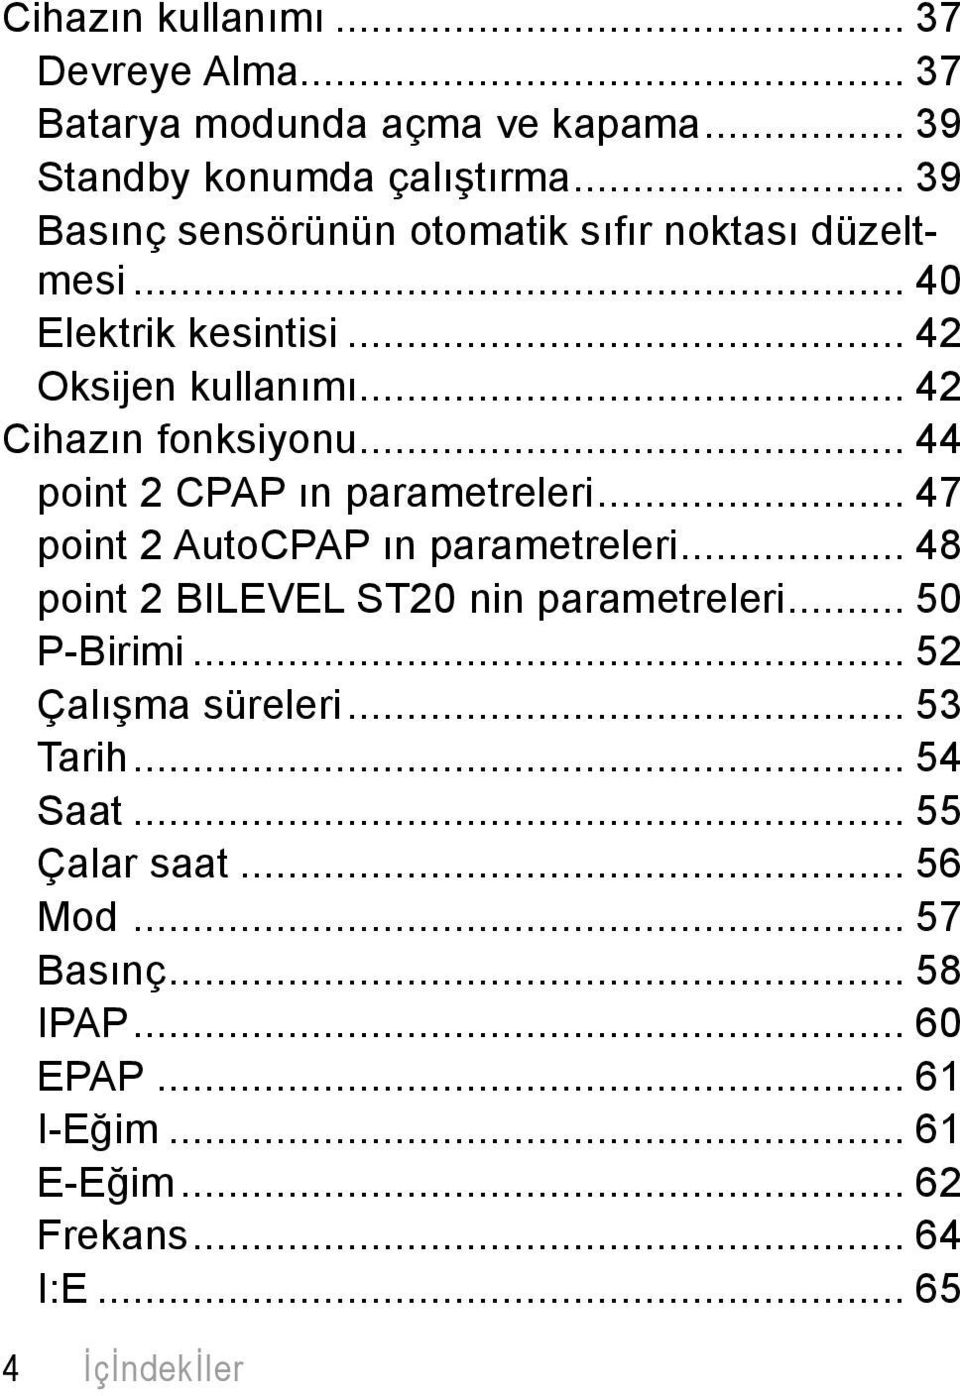 .. 44 point 2 CPAP ın parametreleri... 47 point 2 AutoCPAP ın parametreleri... 48 point 2 BILEVEL ST20 nin parametreleri... 50 P-Birimi.